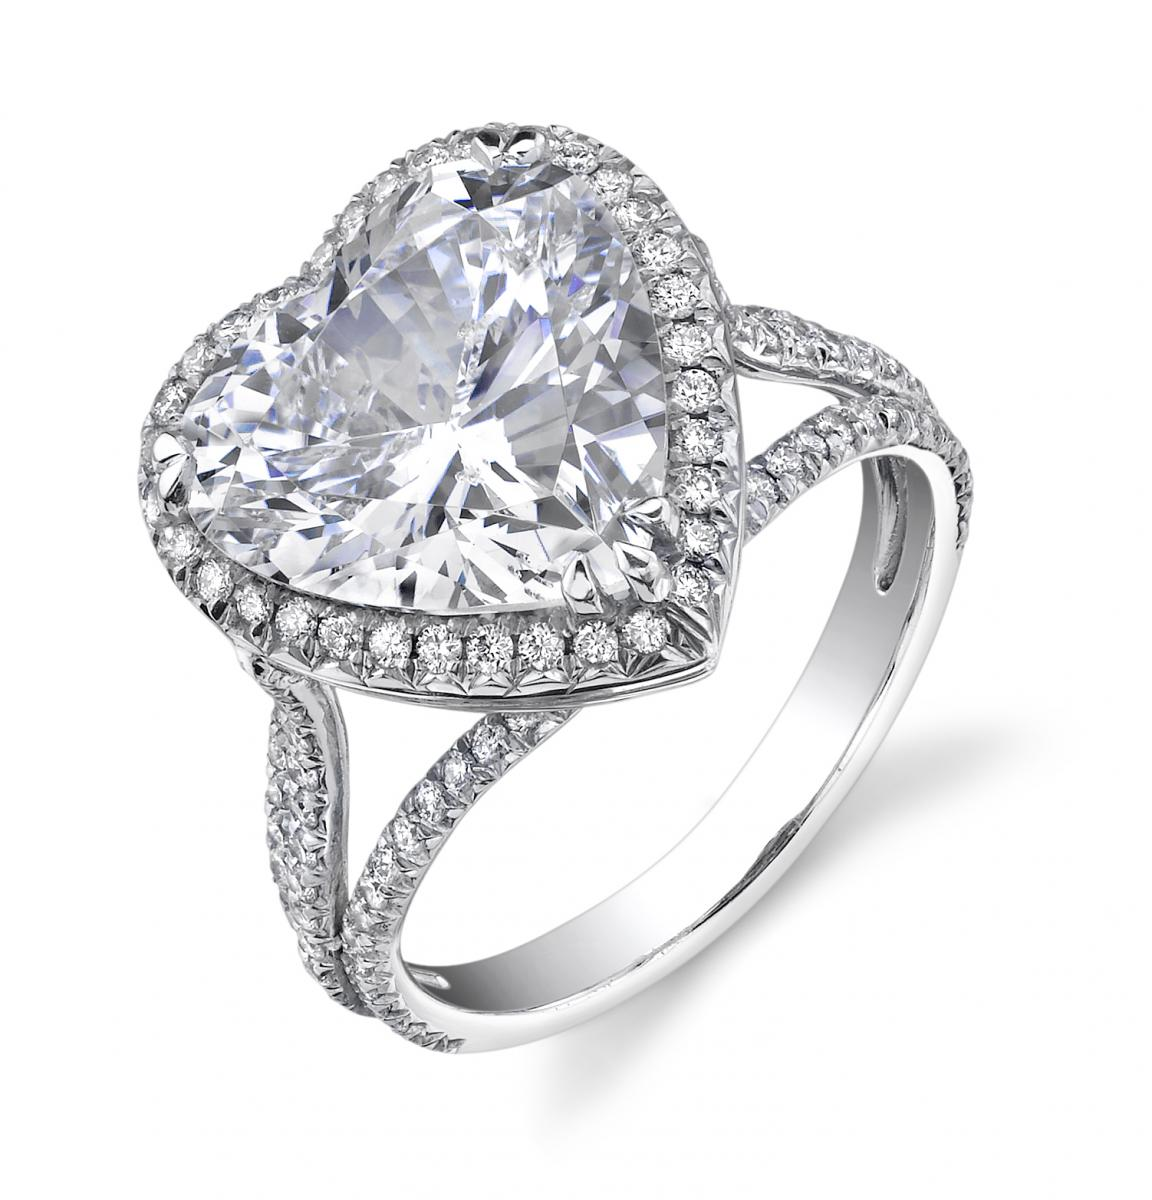 ms ring halo tone two rings junikerjewelry madison shaped engagement diamond cushion com